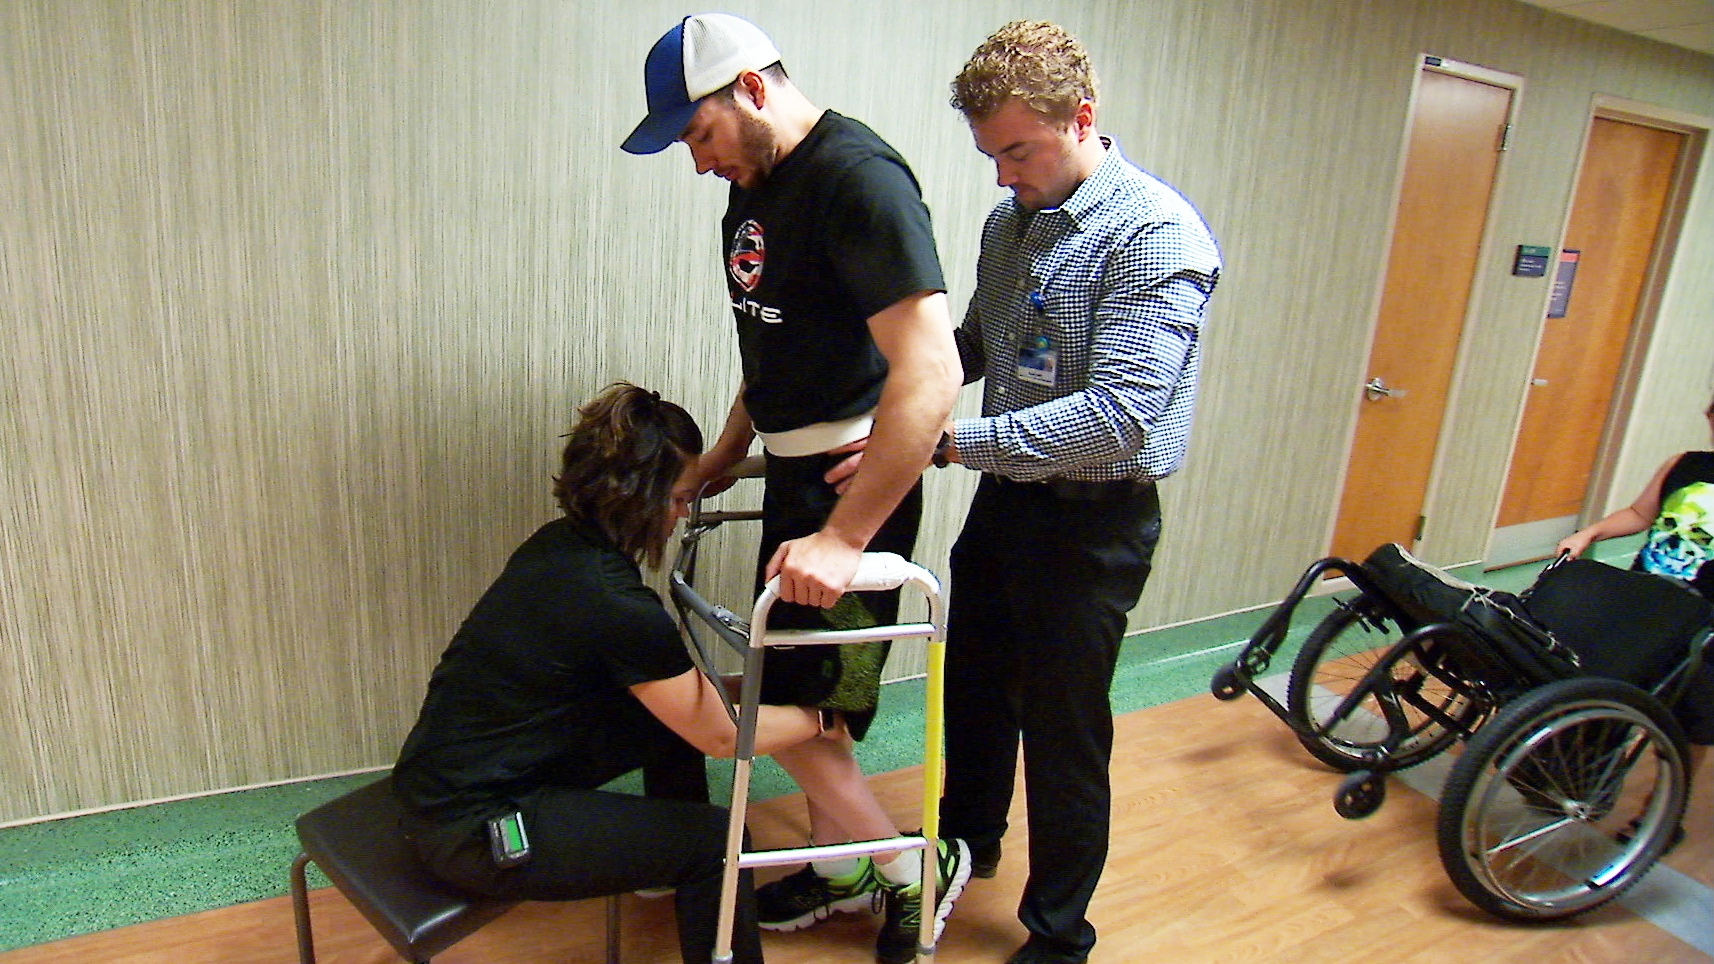 Spinal Cord Stimulation Physical Therapy Help Paralyzed Man Stand Walk Video South Florida